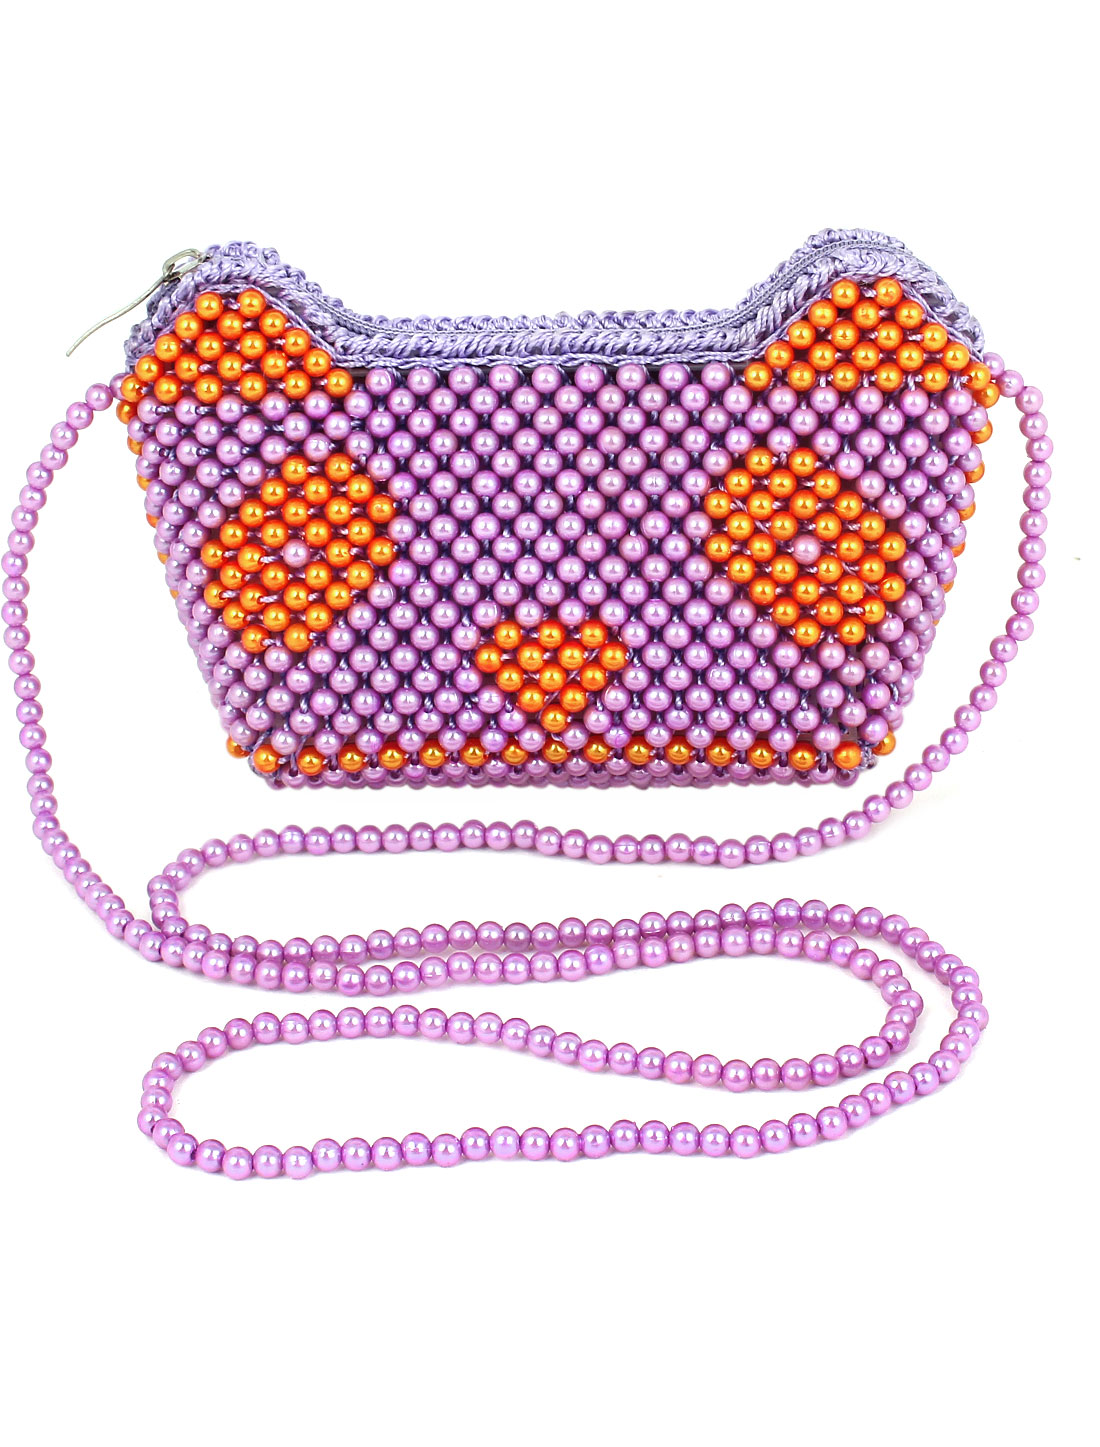 Woman Manual Bright Purple Beaded Ingot Shaped Zipper Closure Wristlet Purse Handbag for Multi Occasion